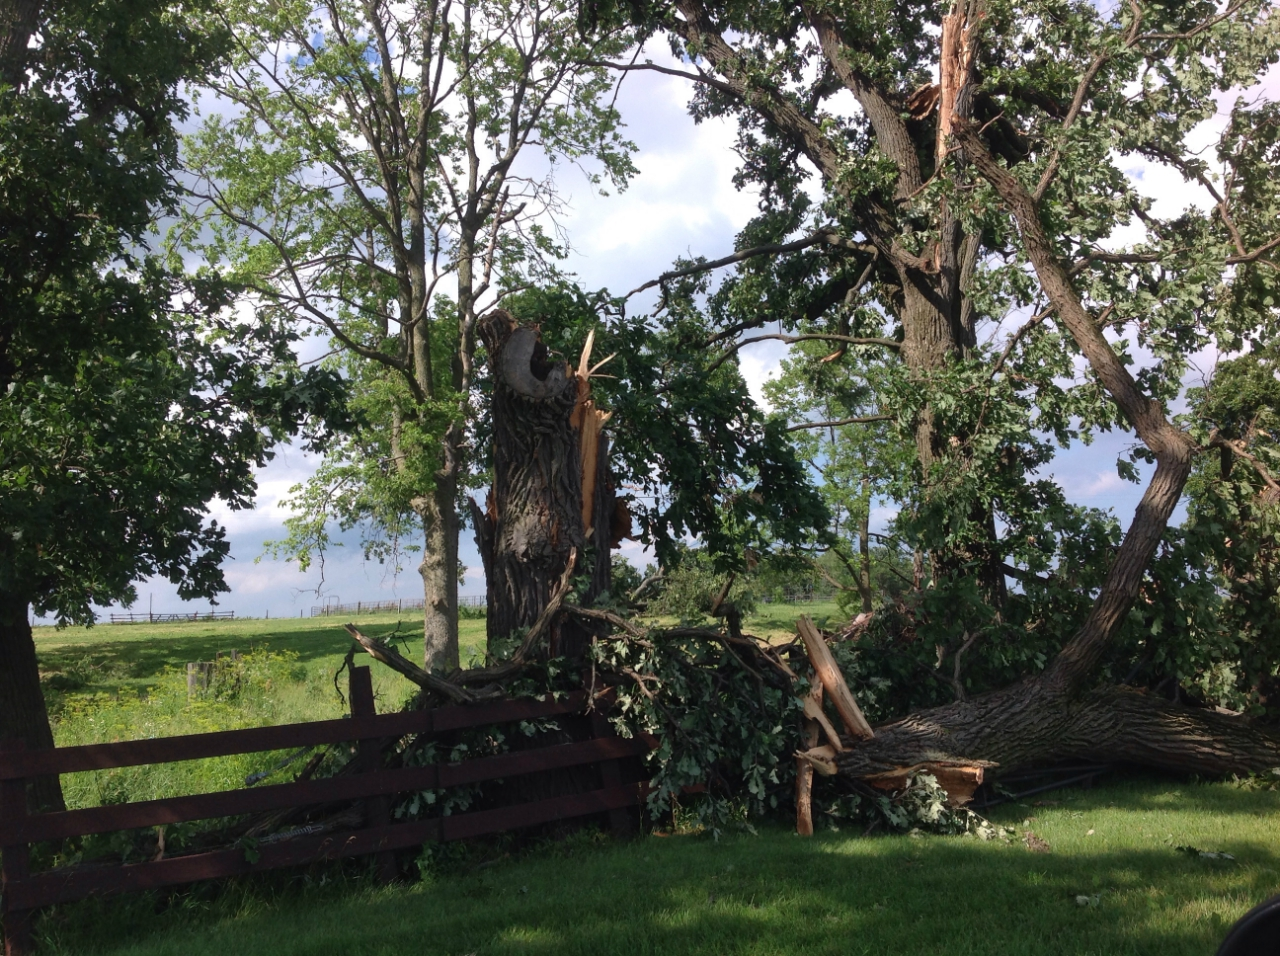 Tree damage 3 miles ESE of Earlville